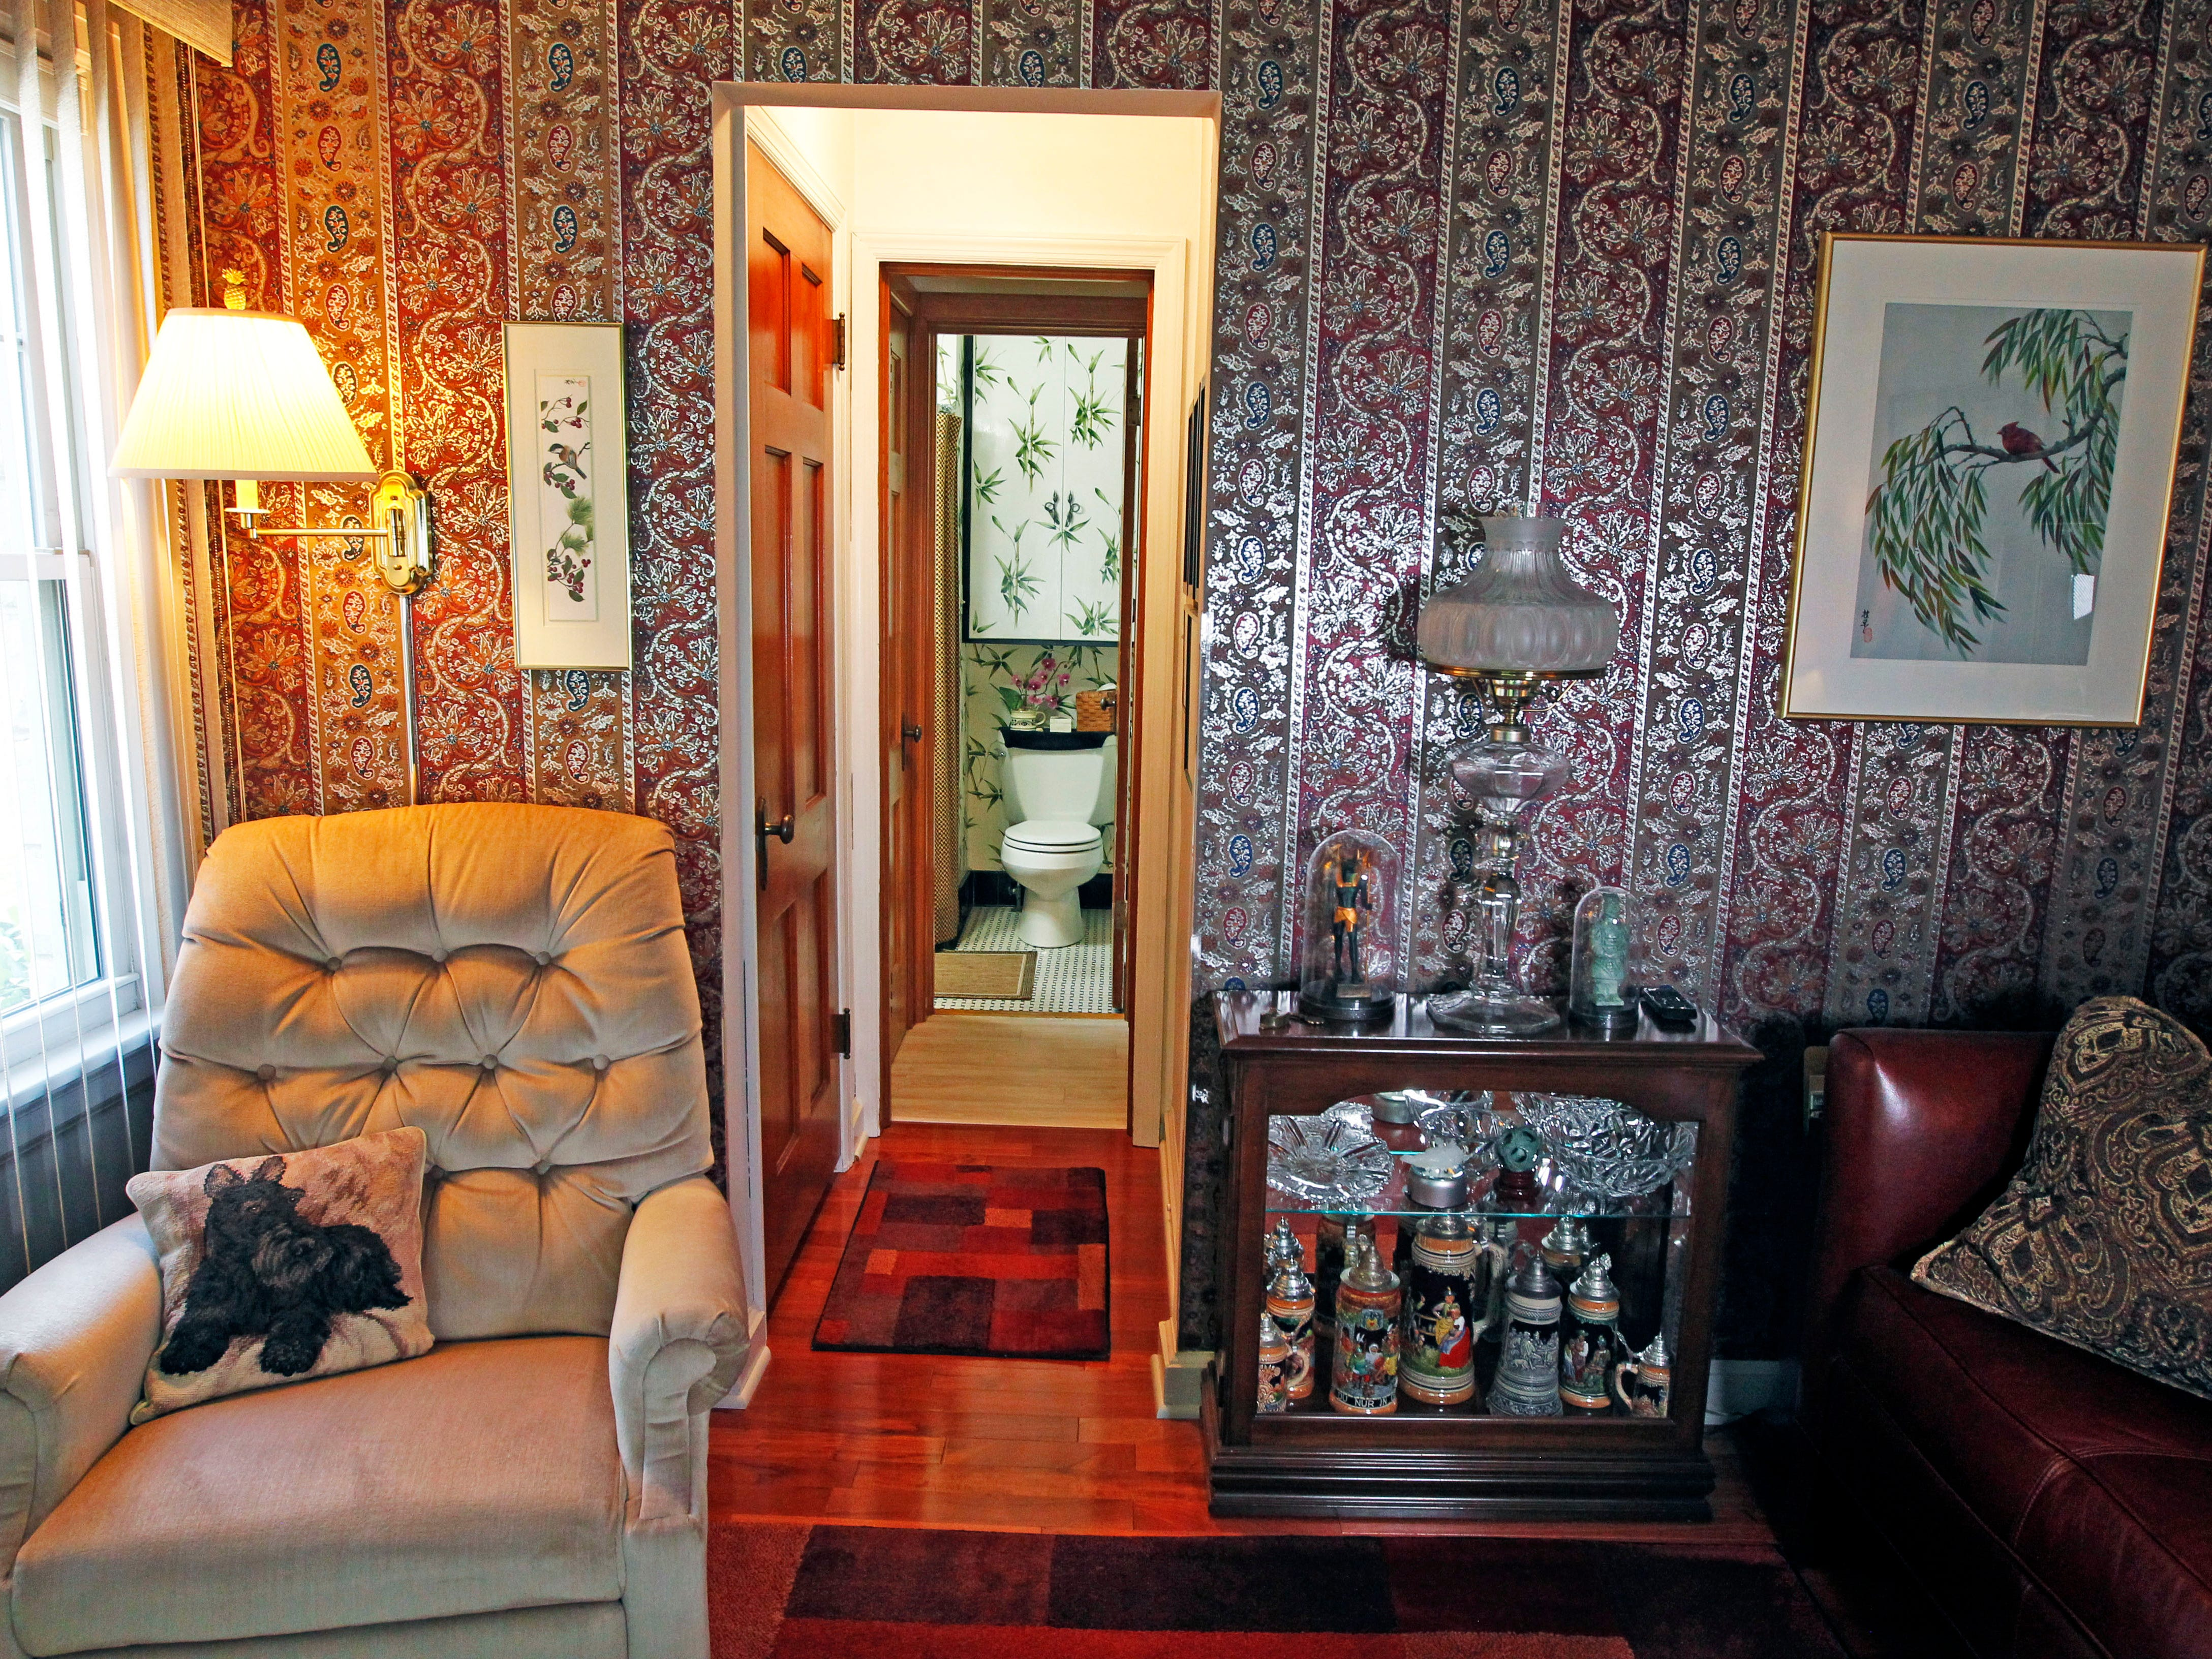 The media room has bold paisley walls and displays many of his world travel souvenirs.